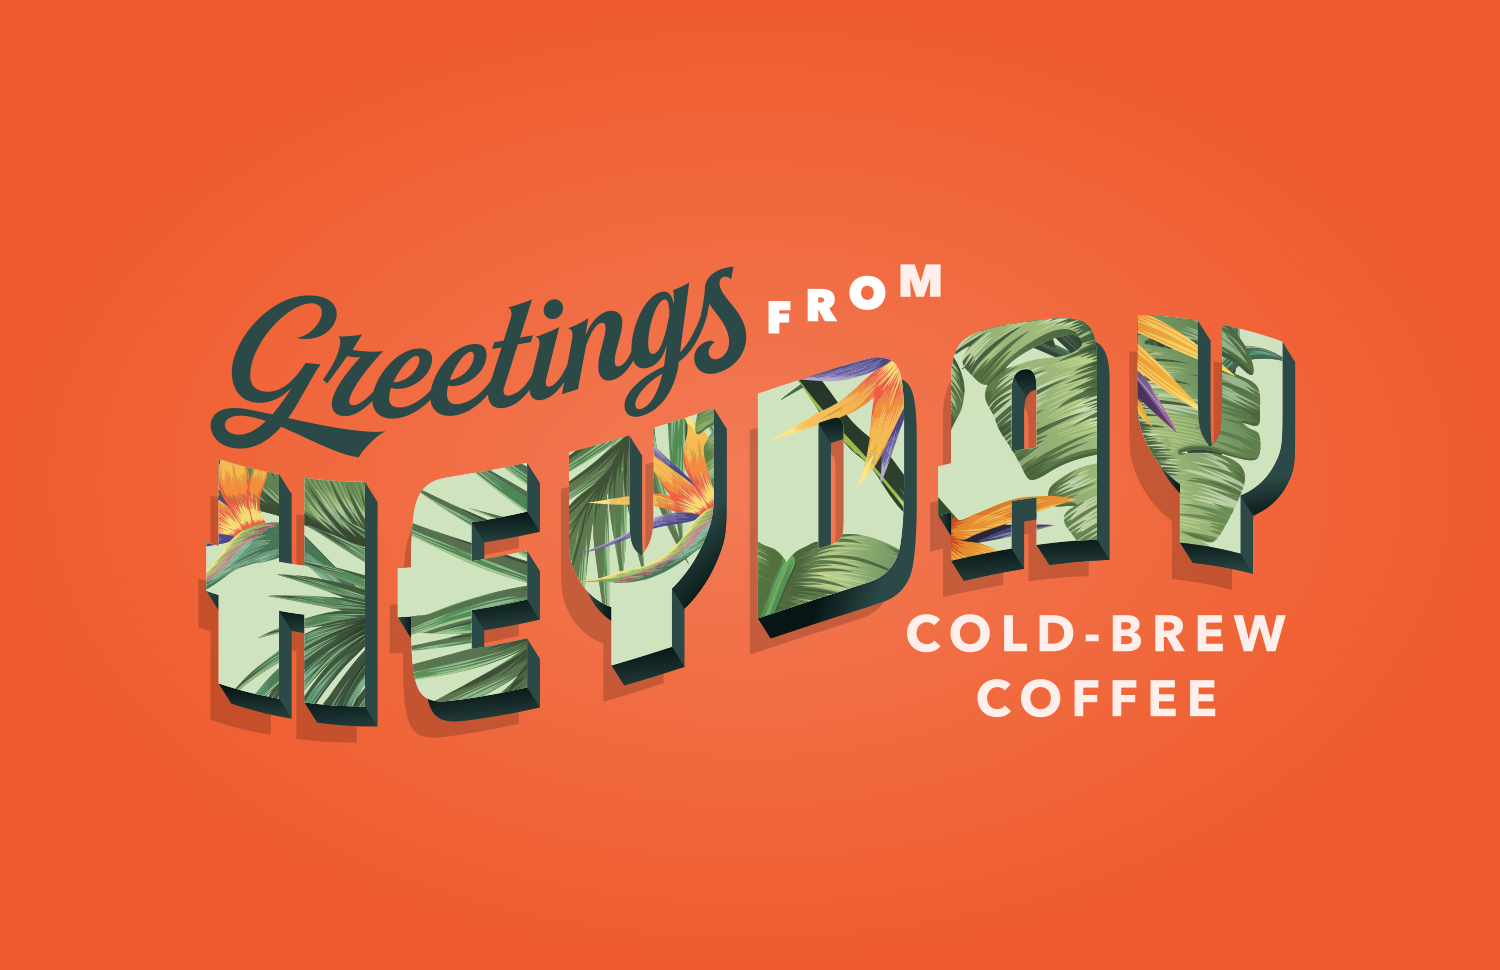 Greetings from HEYDAY Cold-Brew Coffee